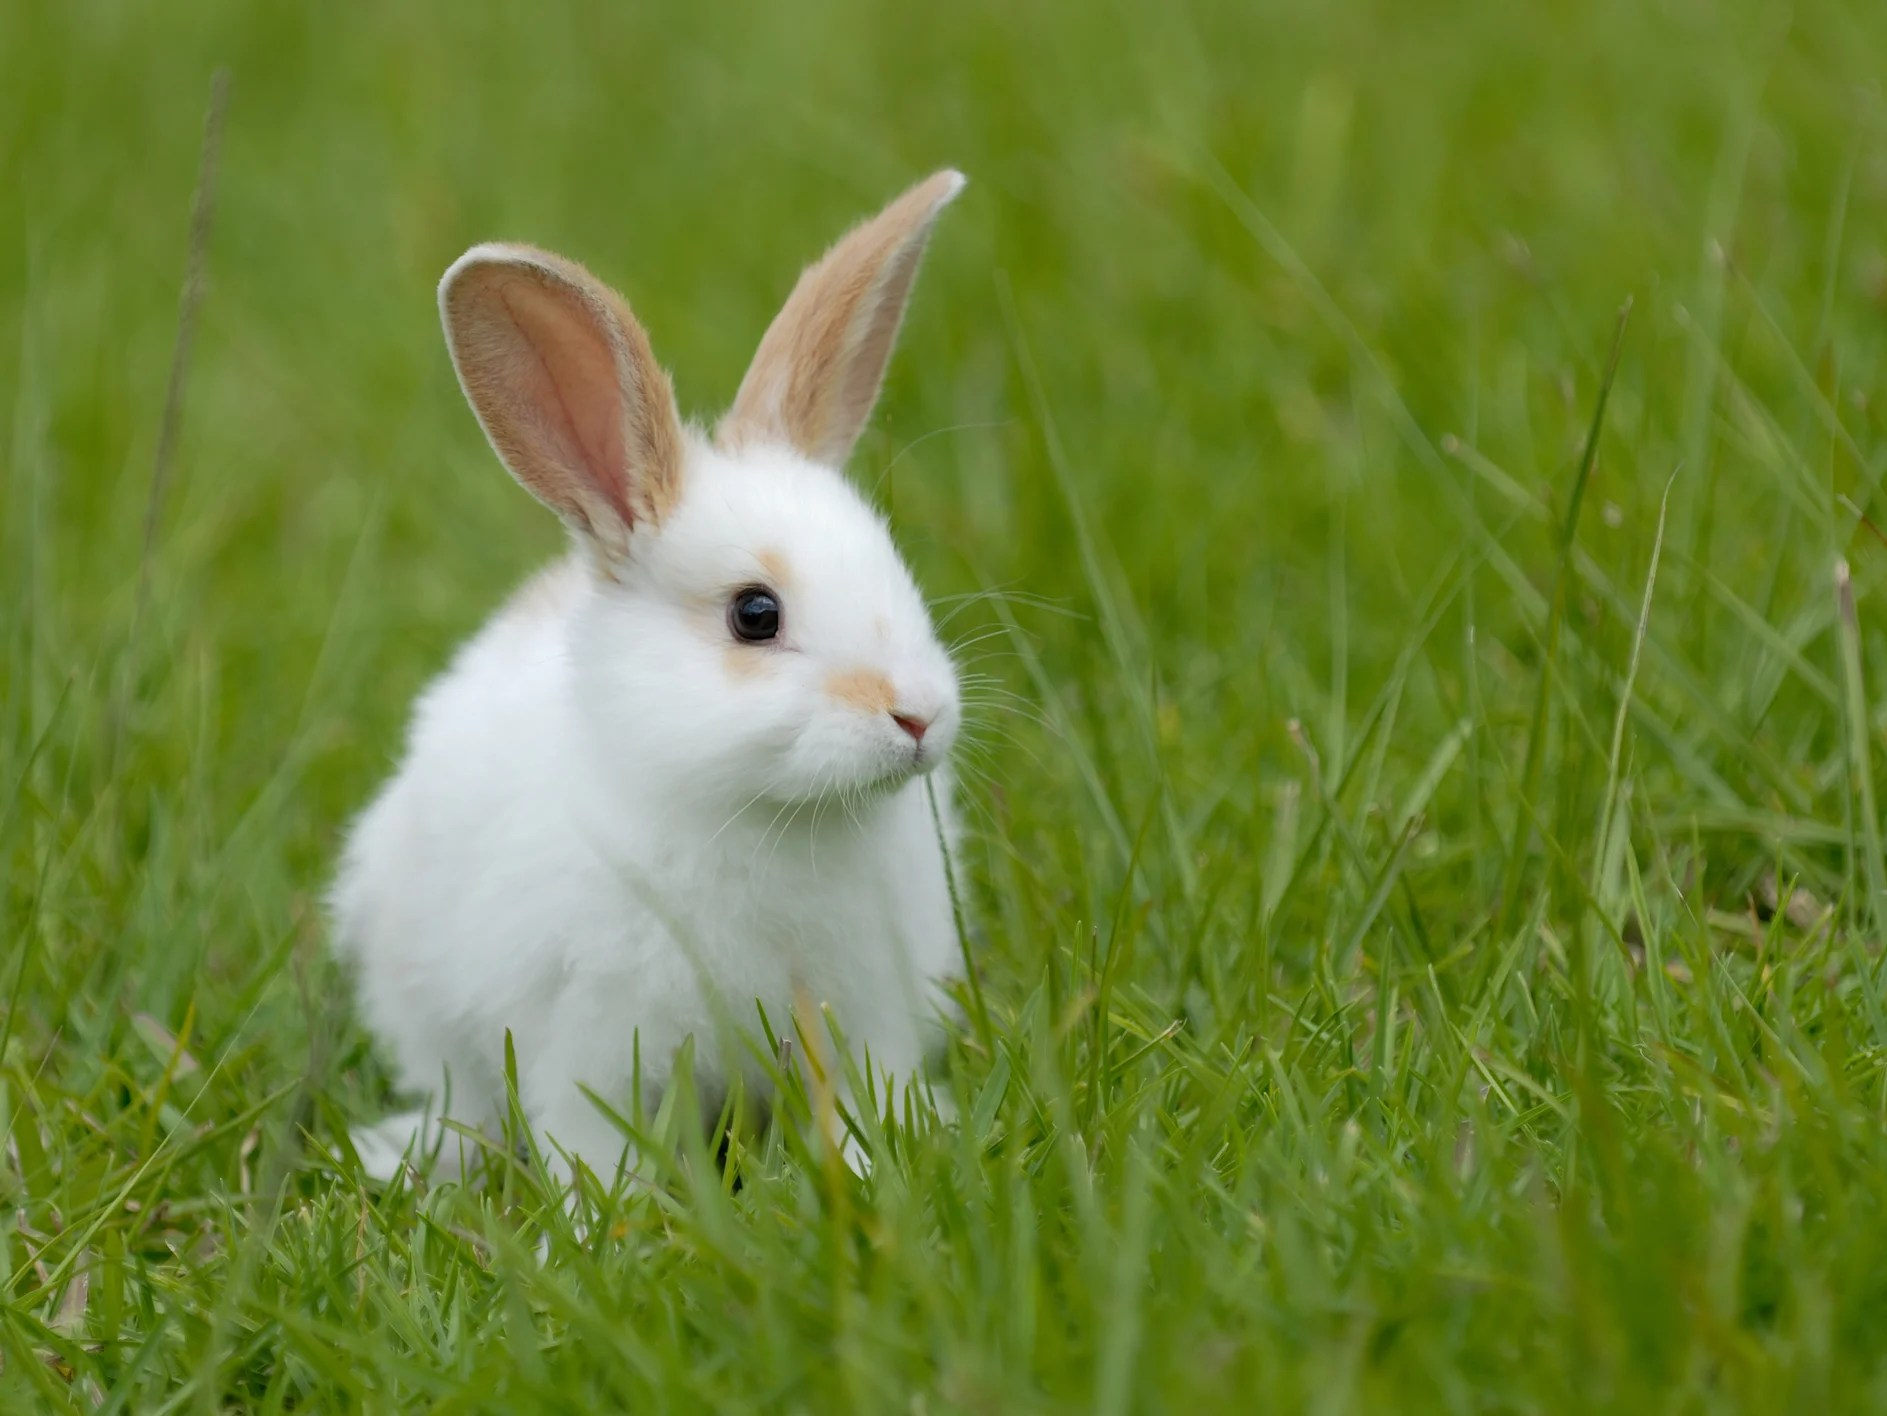 Rabbits Are Stronger And Bigger If They Eat Their Own Faeces Study Finds The Independent The Independent